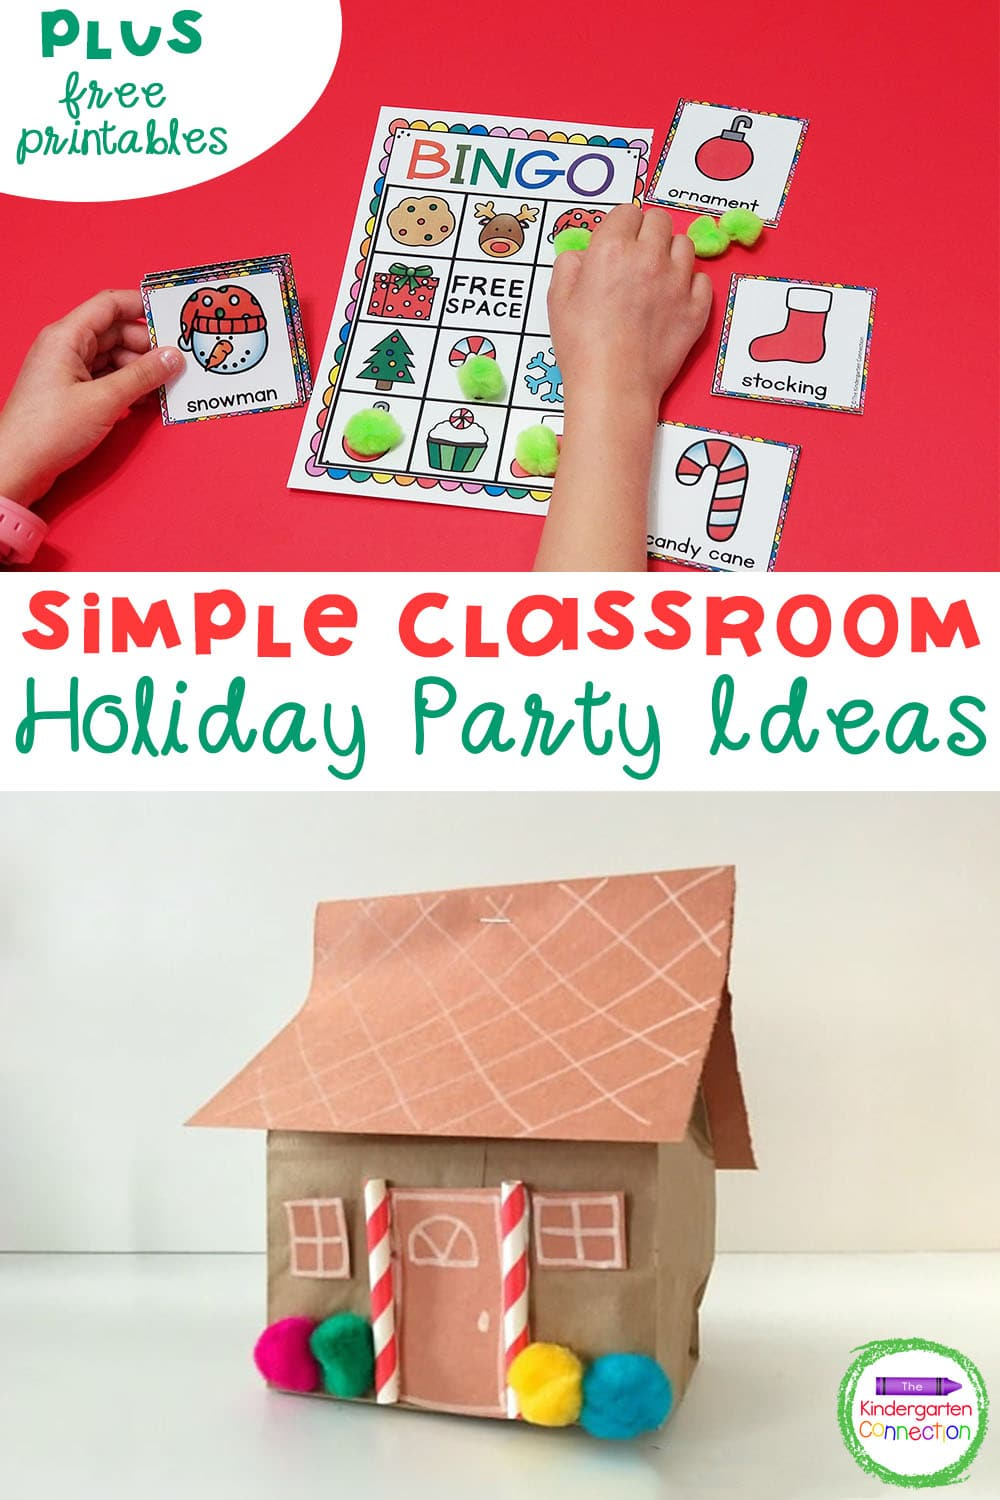 These Simple Classroom Holiday Party Ideas are a perfect way to add some festivity to the classroom without breaking your back (or the bank!).